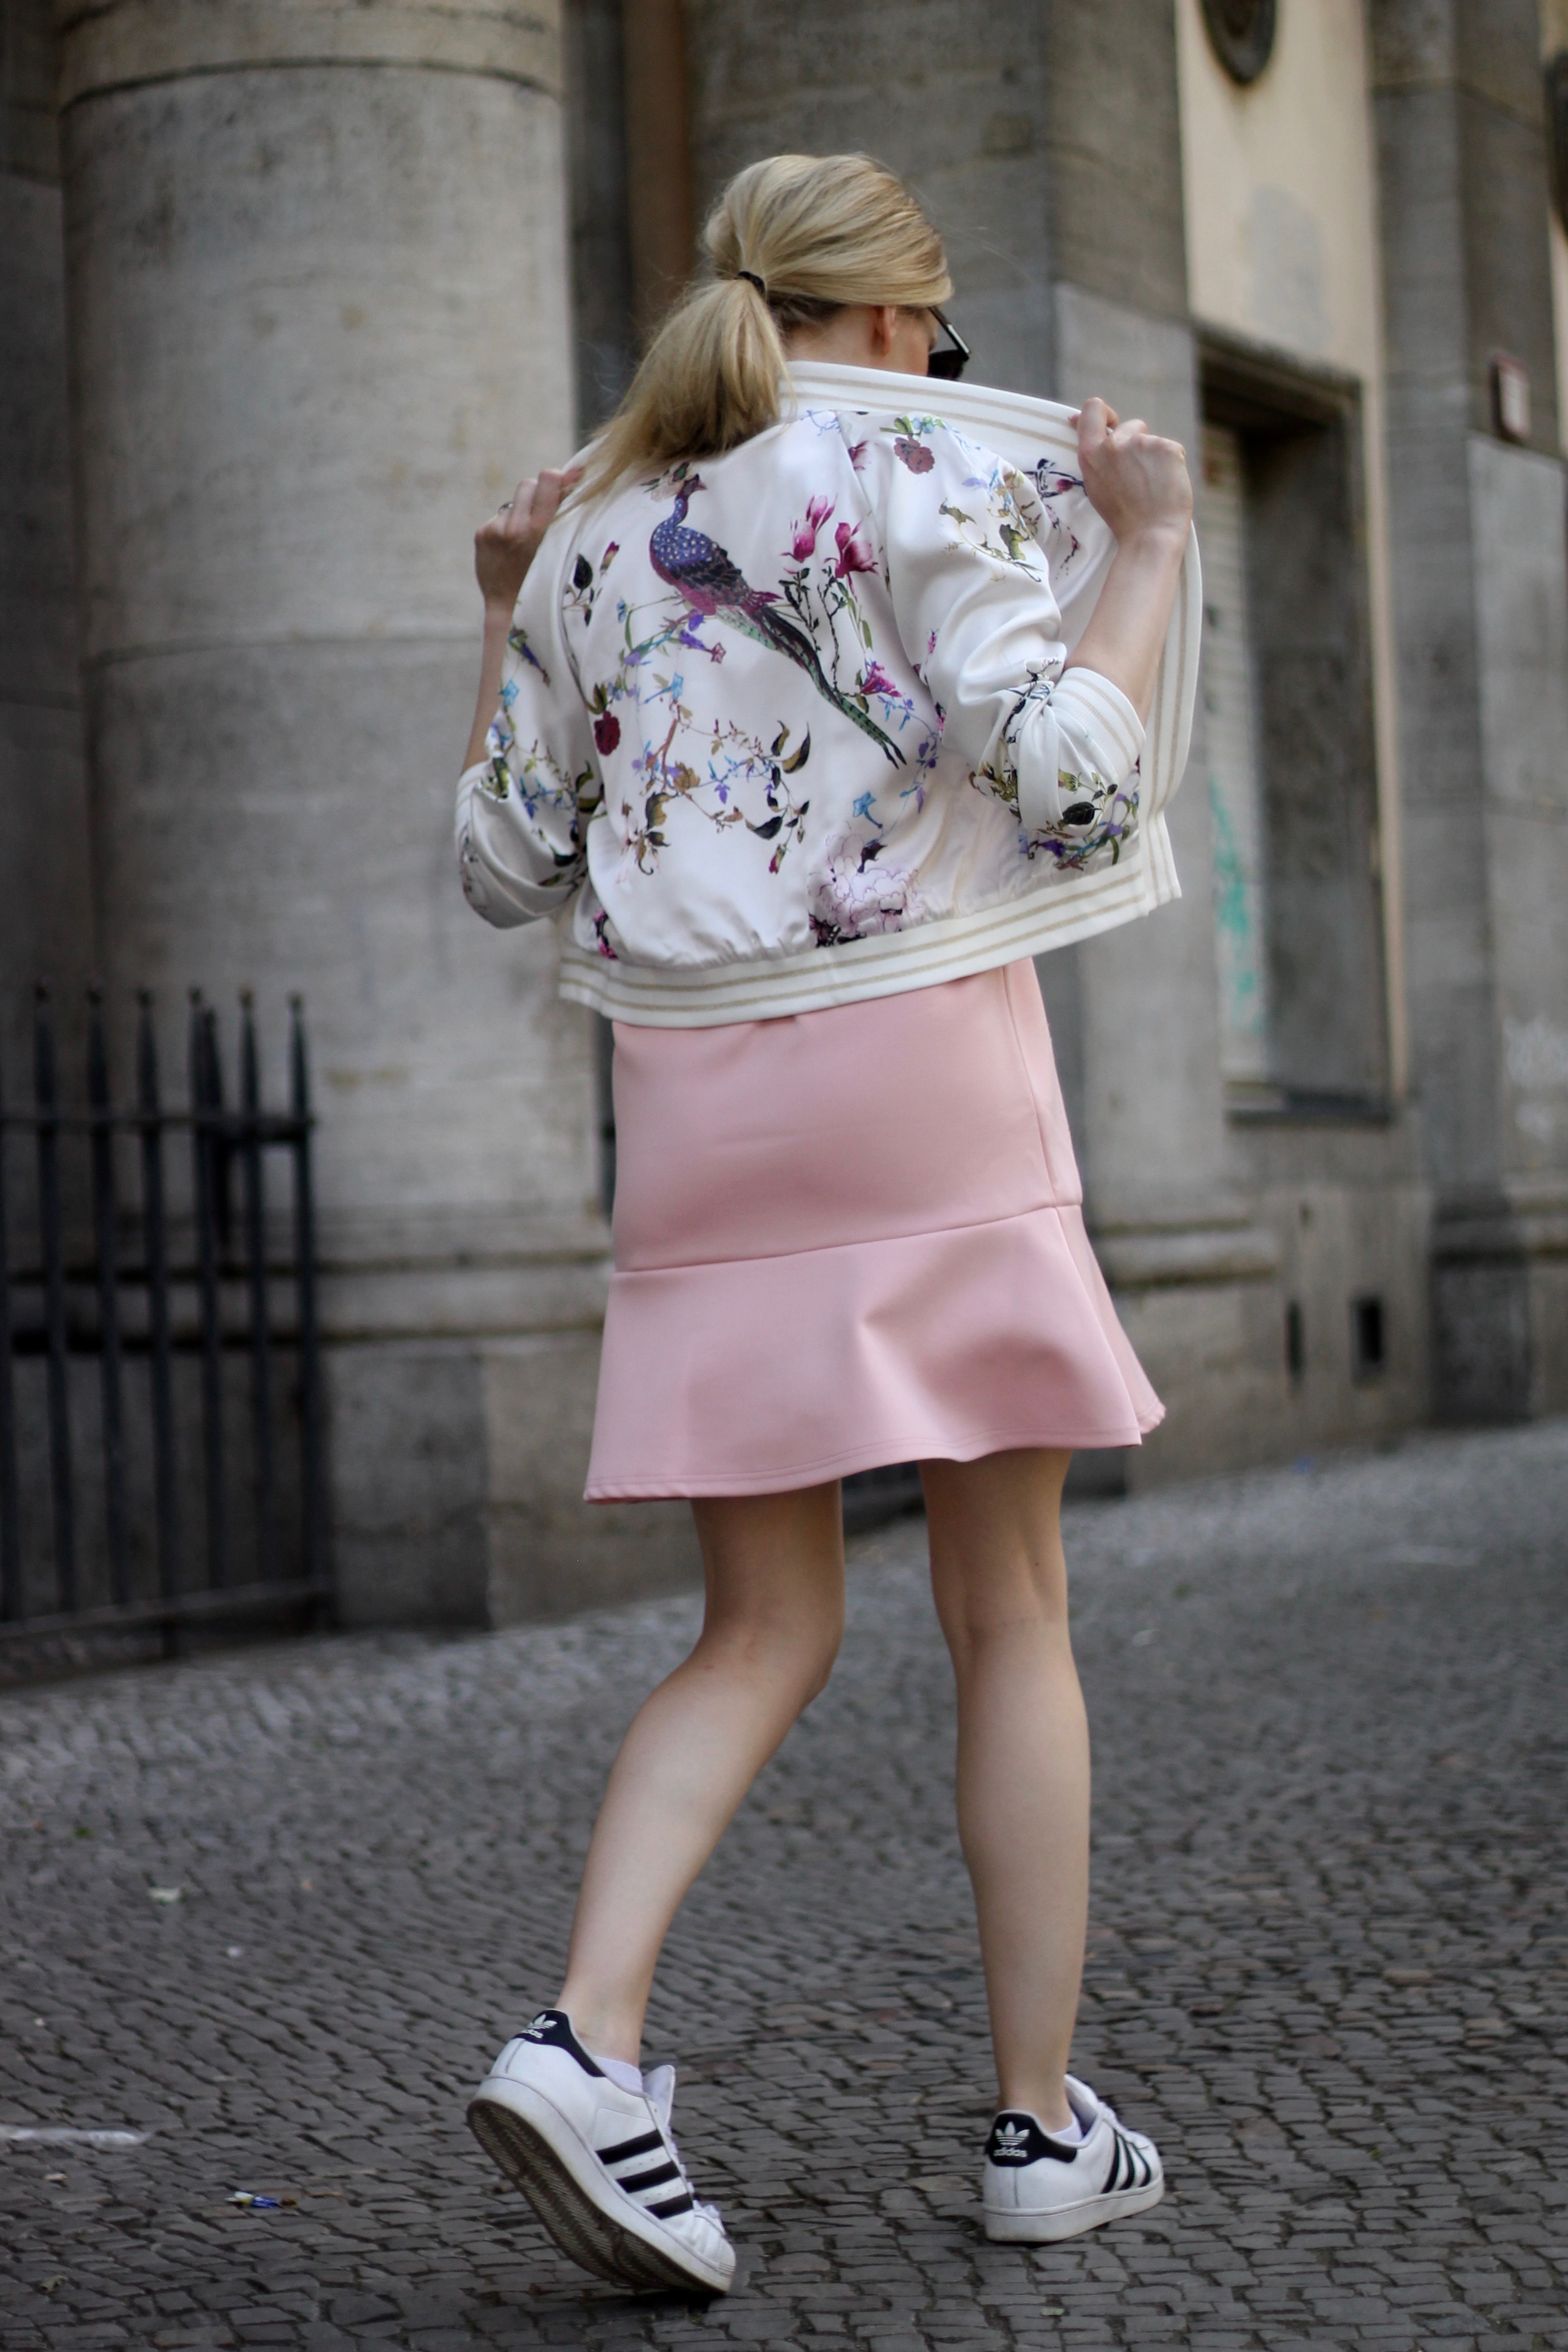 Berlin, Bomber, Florals, Summer and Fall Trends, Fashion, Adidas Superstar, www.KohlerCharles.com